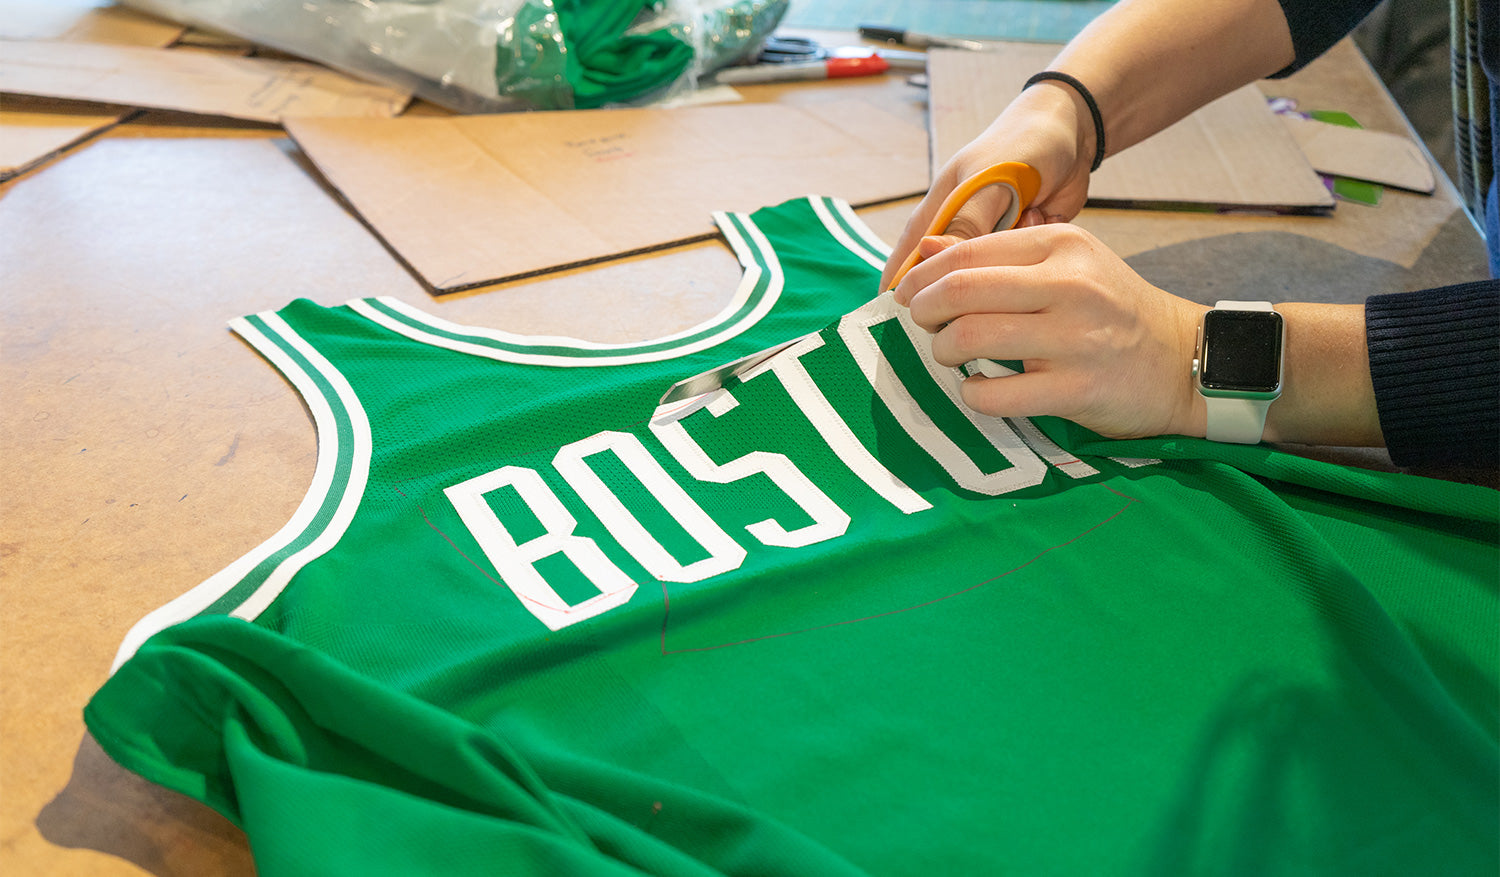 upcycling a celtics jersey